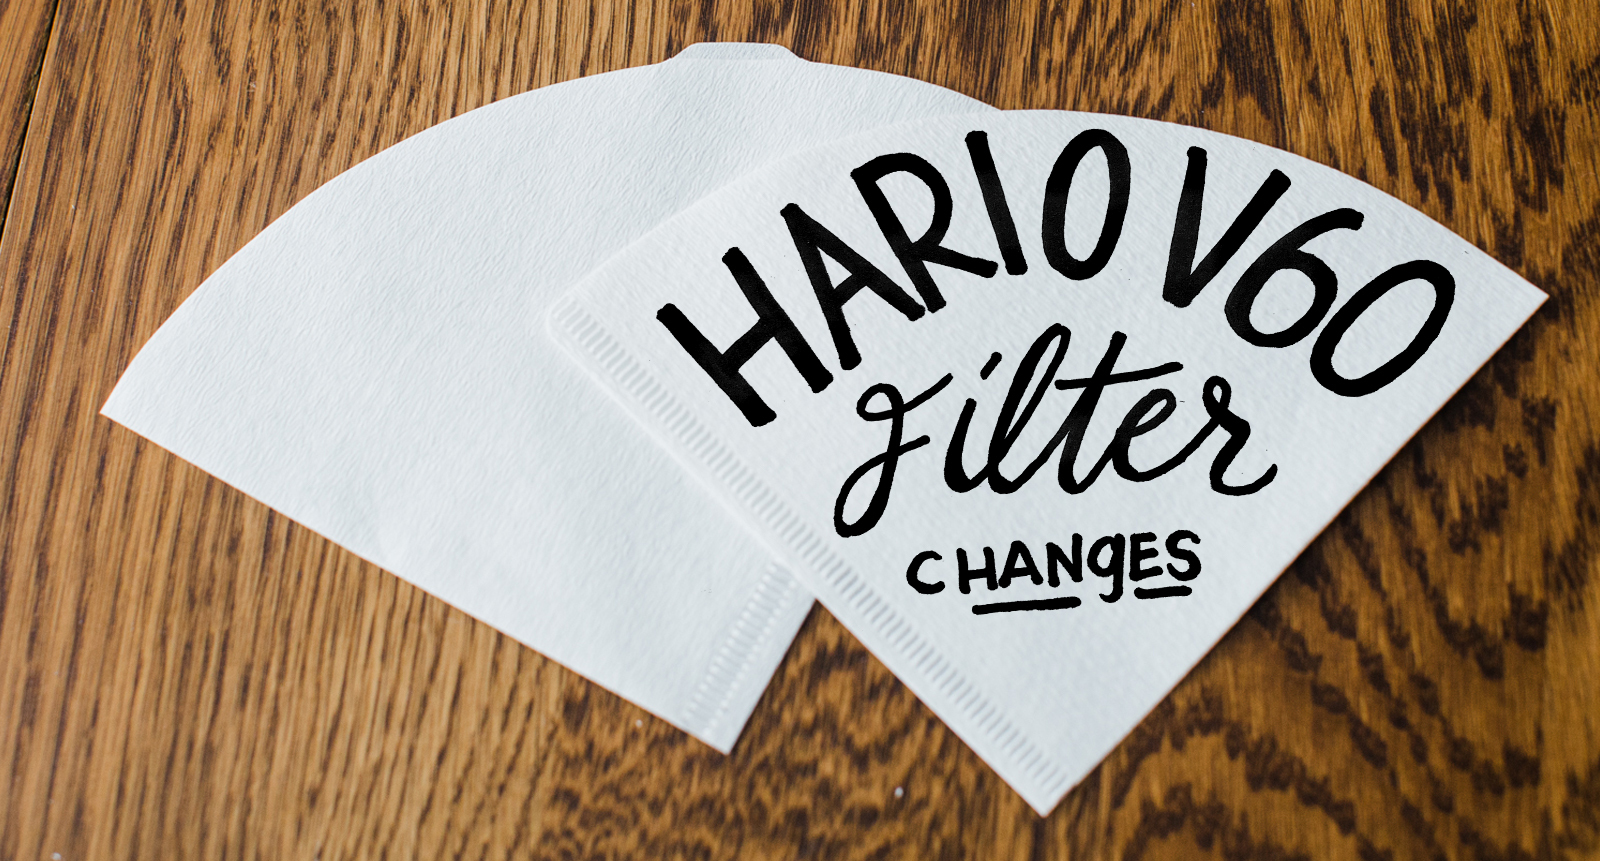 Hario V60 Filter Changes